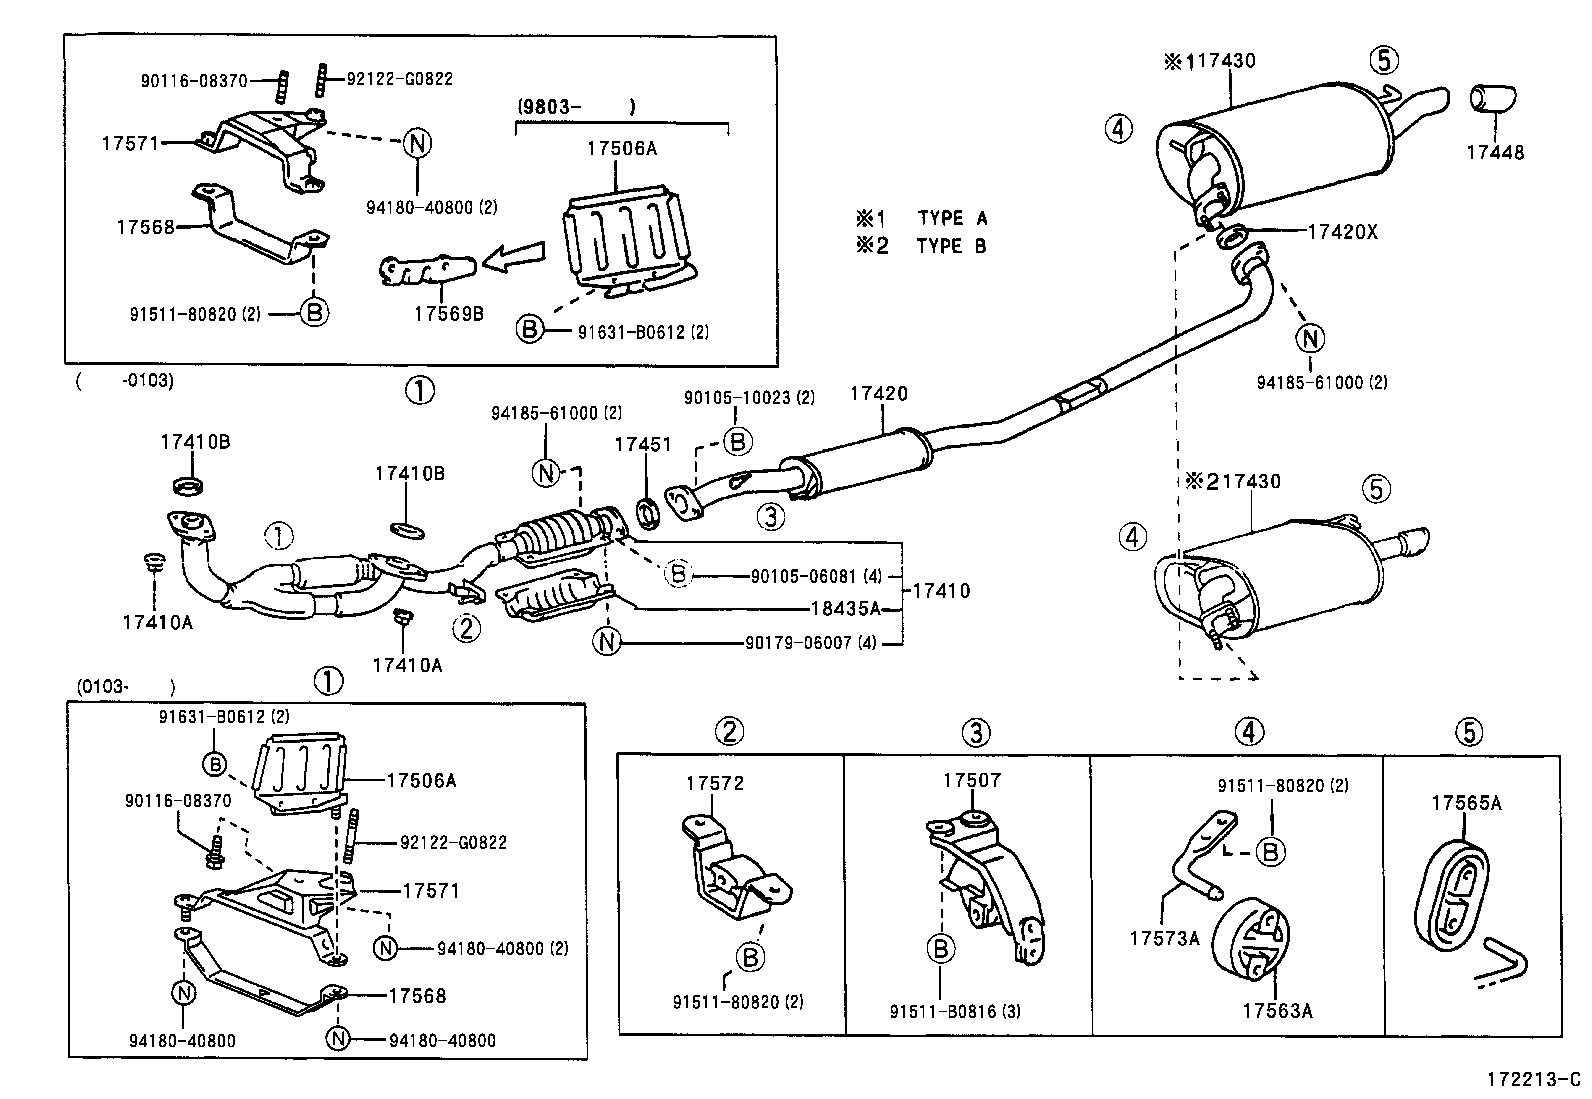 Camry Engine Parts Diagram 06 Ford Taurus Fuse Box Diagram